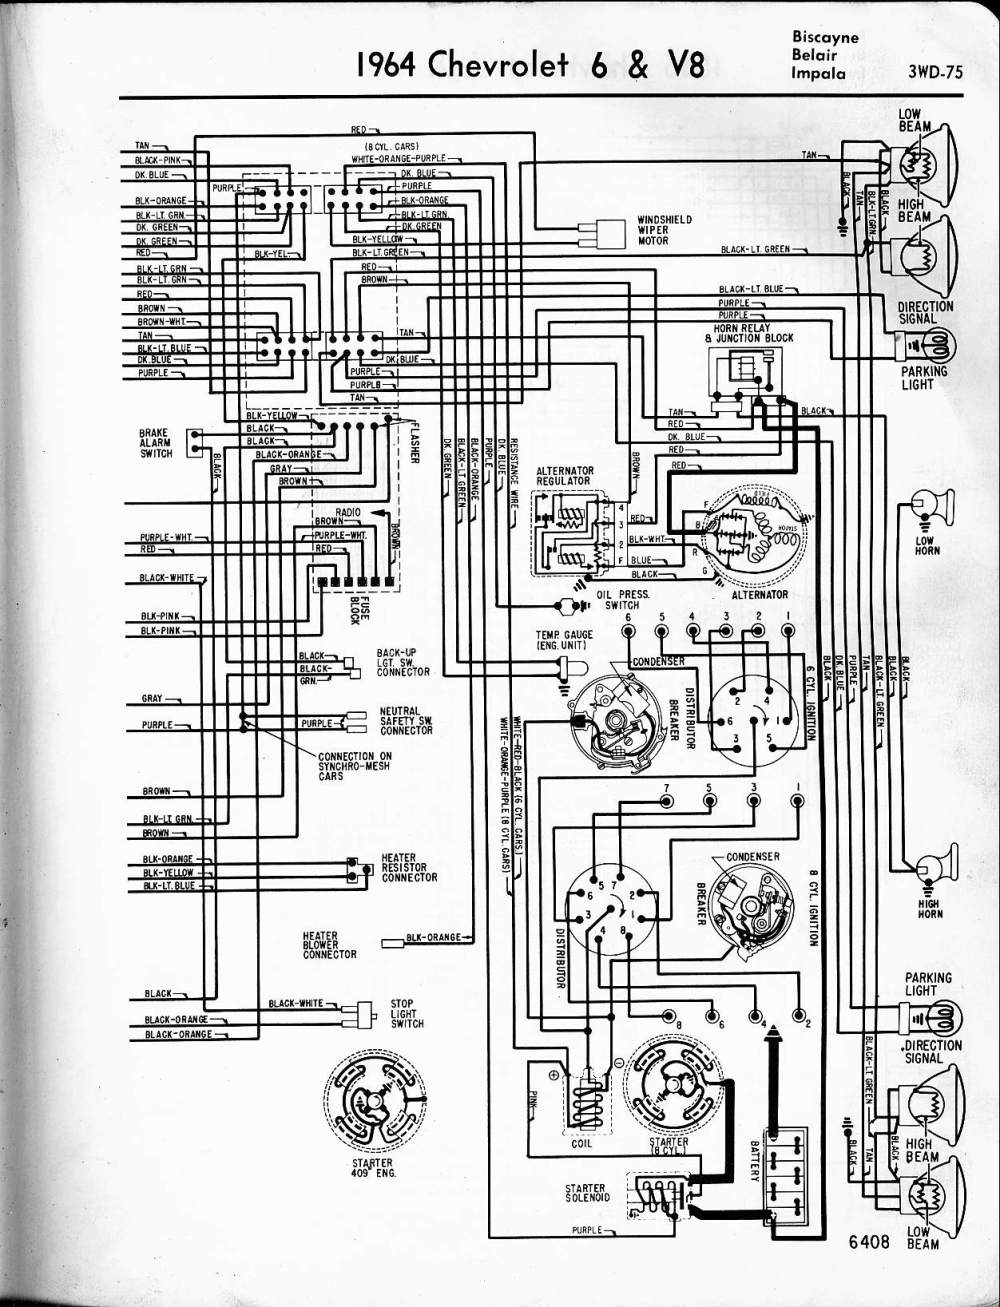 medium resolution of 57 65 chevy wiring diagrams 2005 impala fuse diagram 1964 6 v8 biscayne belair